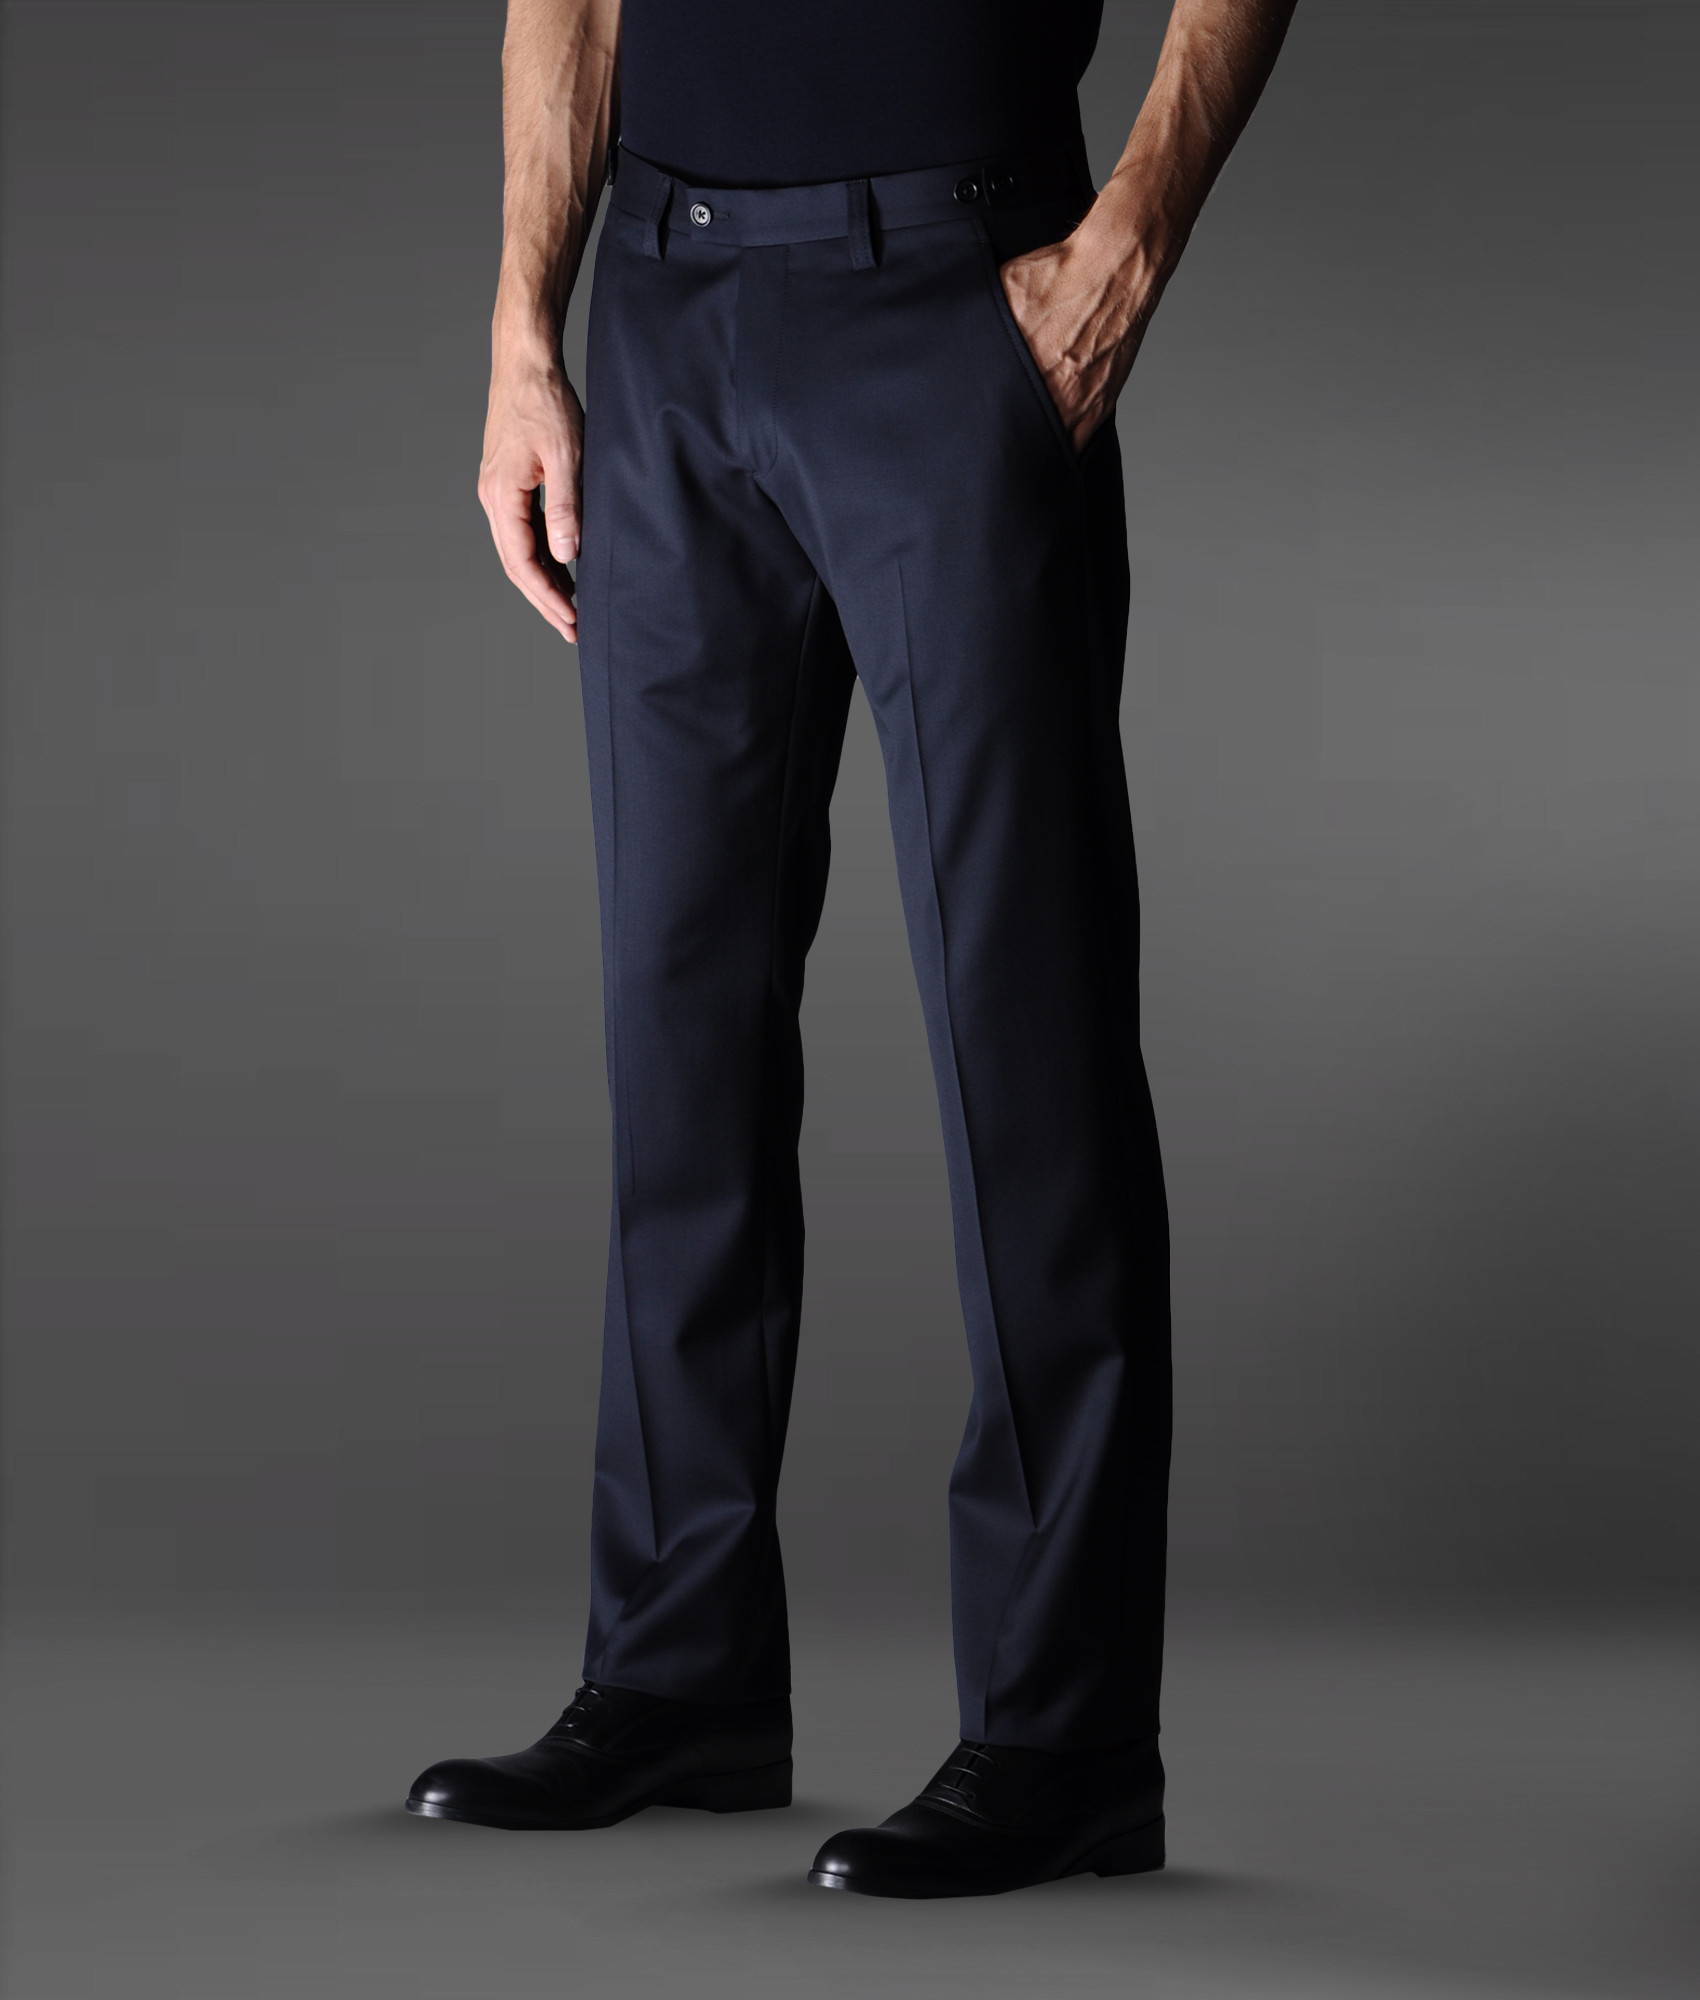 Shop for and buy navy blue khaki pants online at Macy's. Find navy blue khaki pants at Macy's.